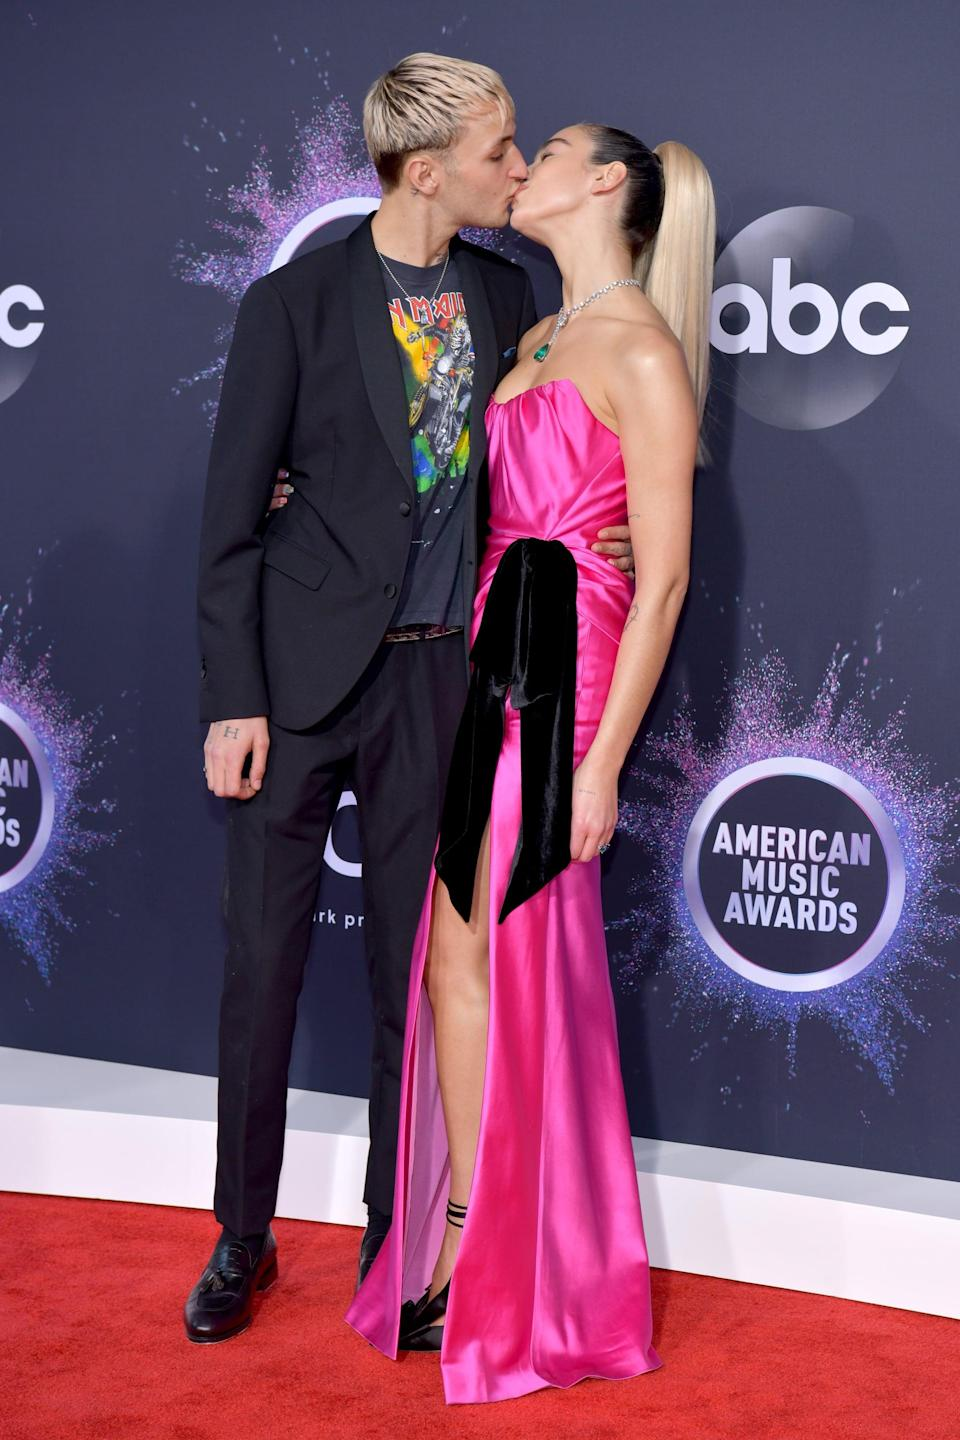 """<p>Now tell me this doesn't make your heart soar? We love that Anwar kept it casual by pairing his suit with a t-shirt, and Dua <a href=""""https://www.popsugar.com/fashion/dua-lipa-pink-dress-at-amas-2019-46941510"""" class=""""link rapid-noclick-resp"""" rel=""""nofollow noopener"""" target=""""_blank"""" data-ylk=""""slk:opted for a pink gown with a giant bow"""">opted for a pink gown with a giant bow</a>.</p>"""